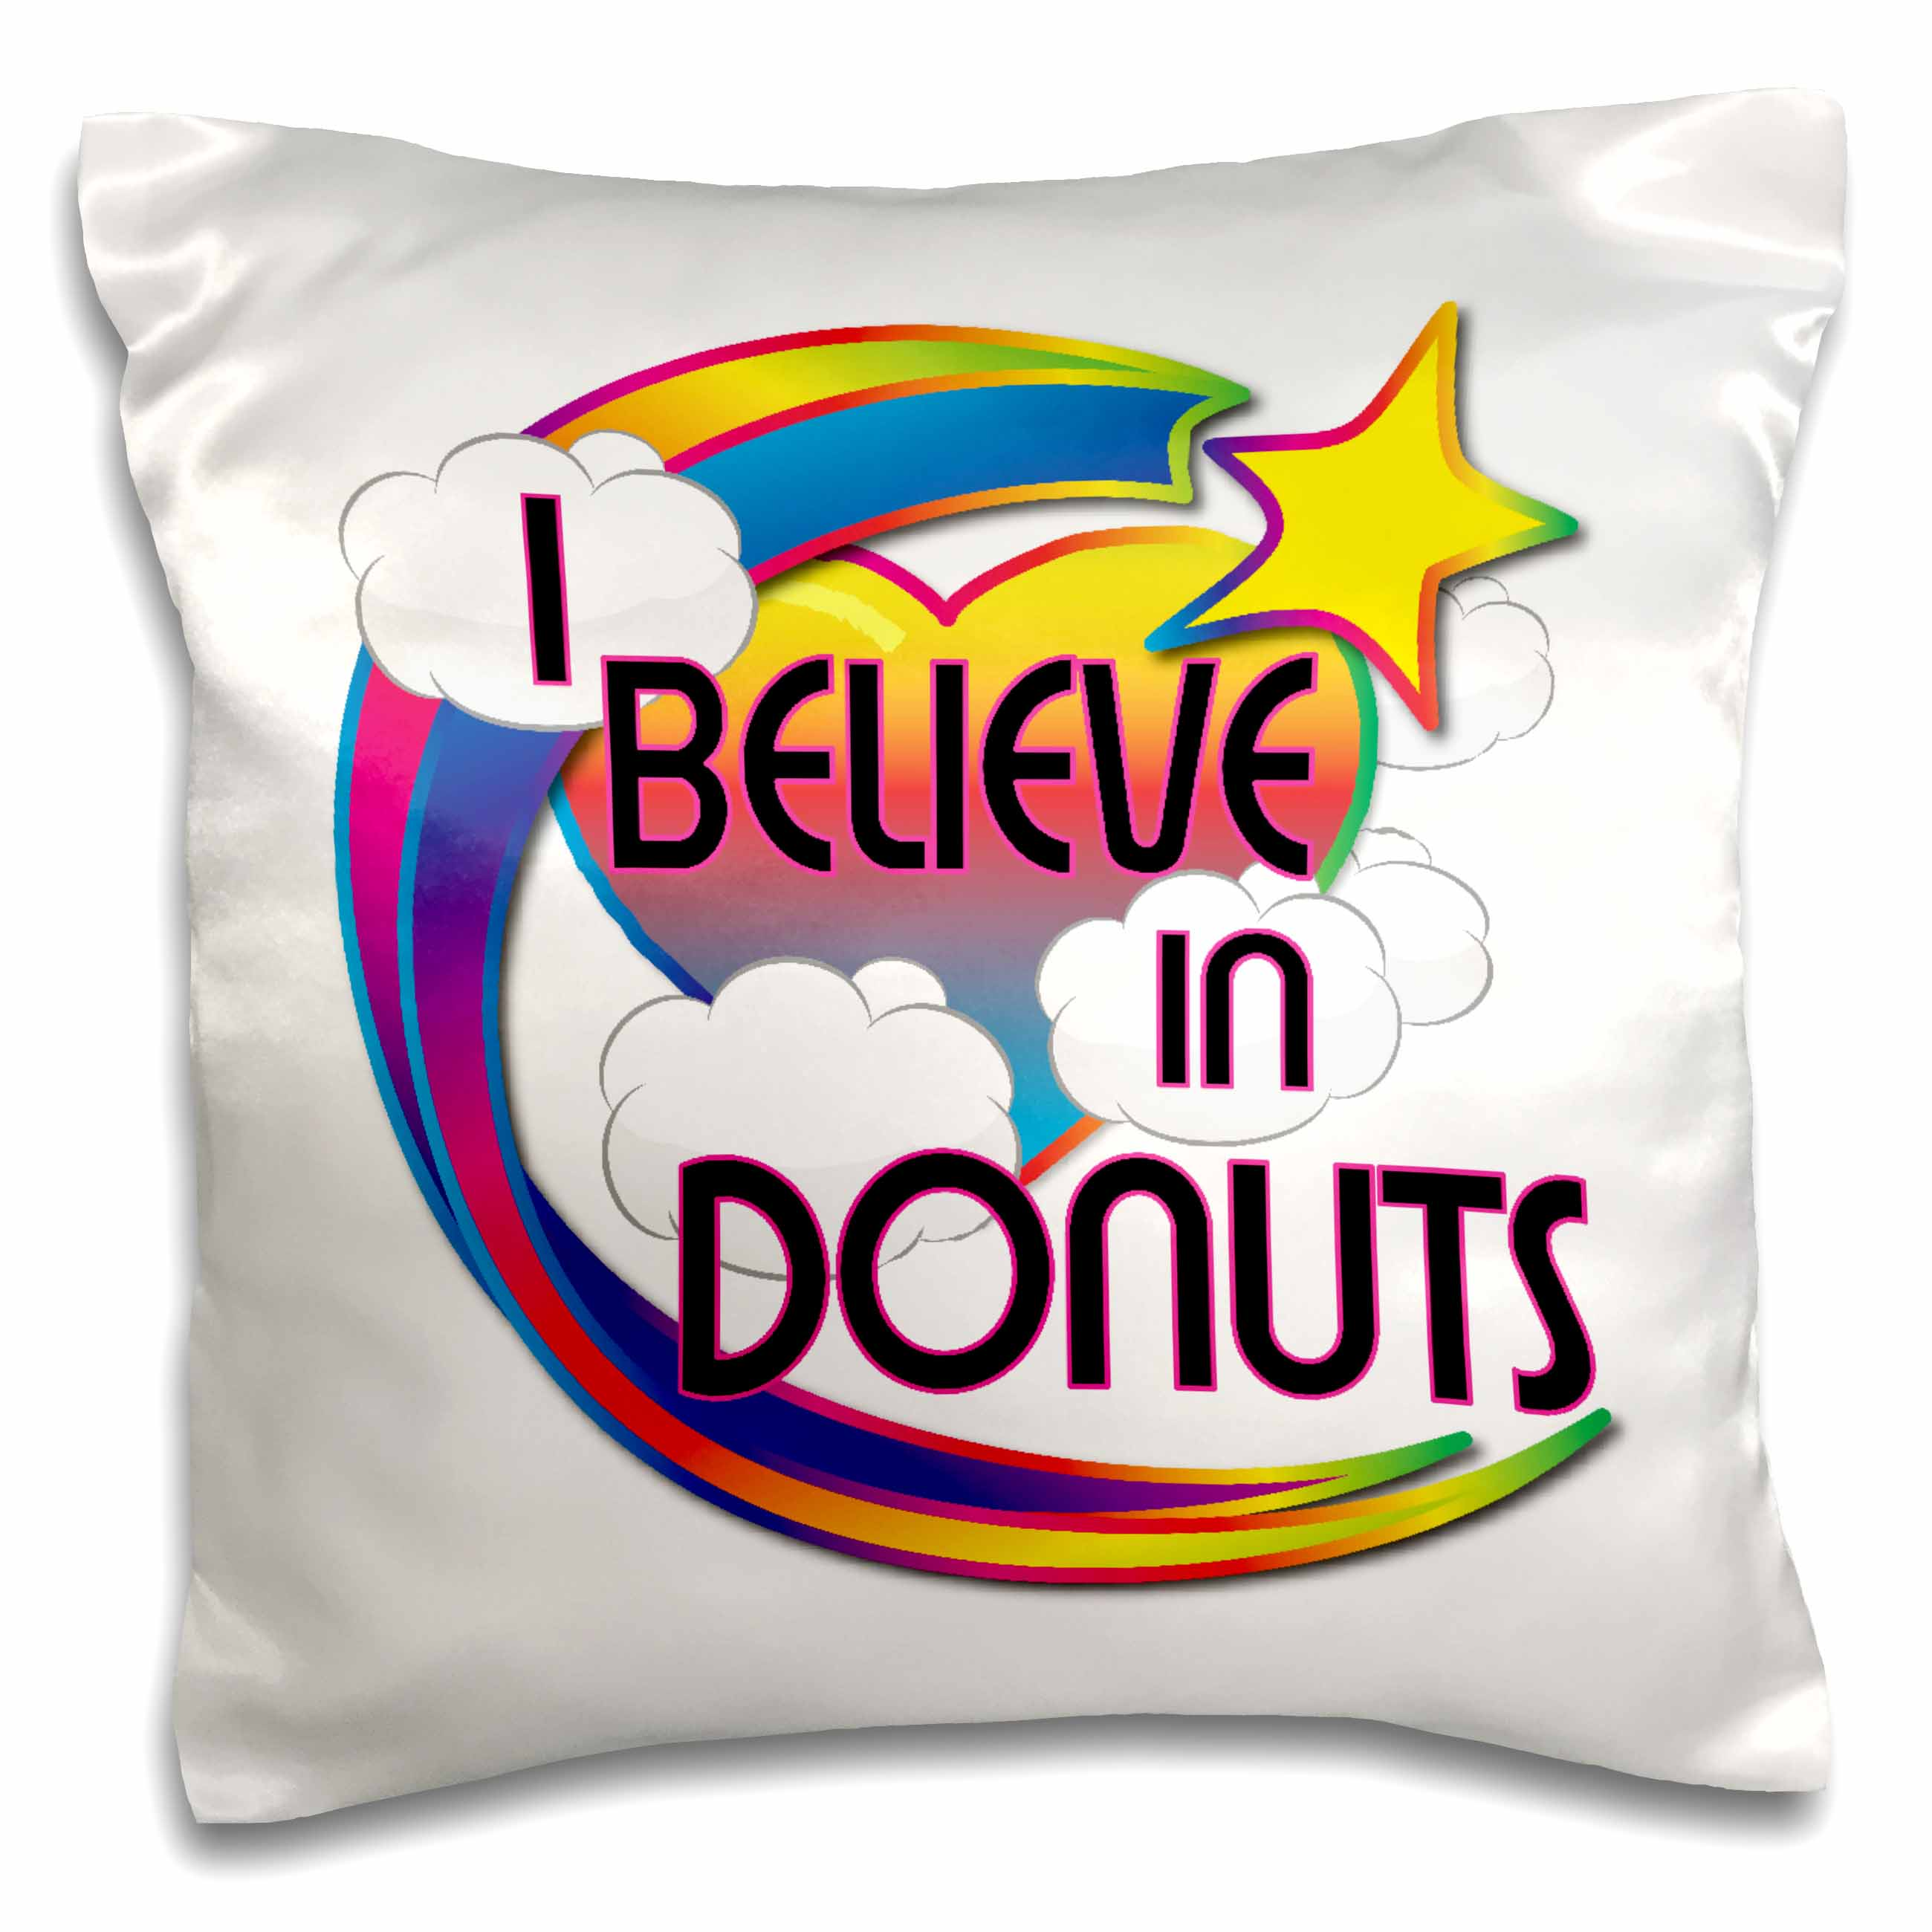 3dRose I Believe In Donuts Cute Believer Design, Pillow Case, 16 by 16-inch